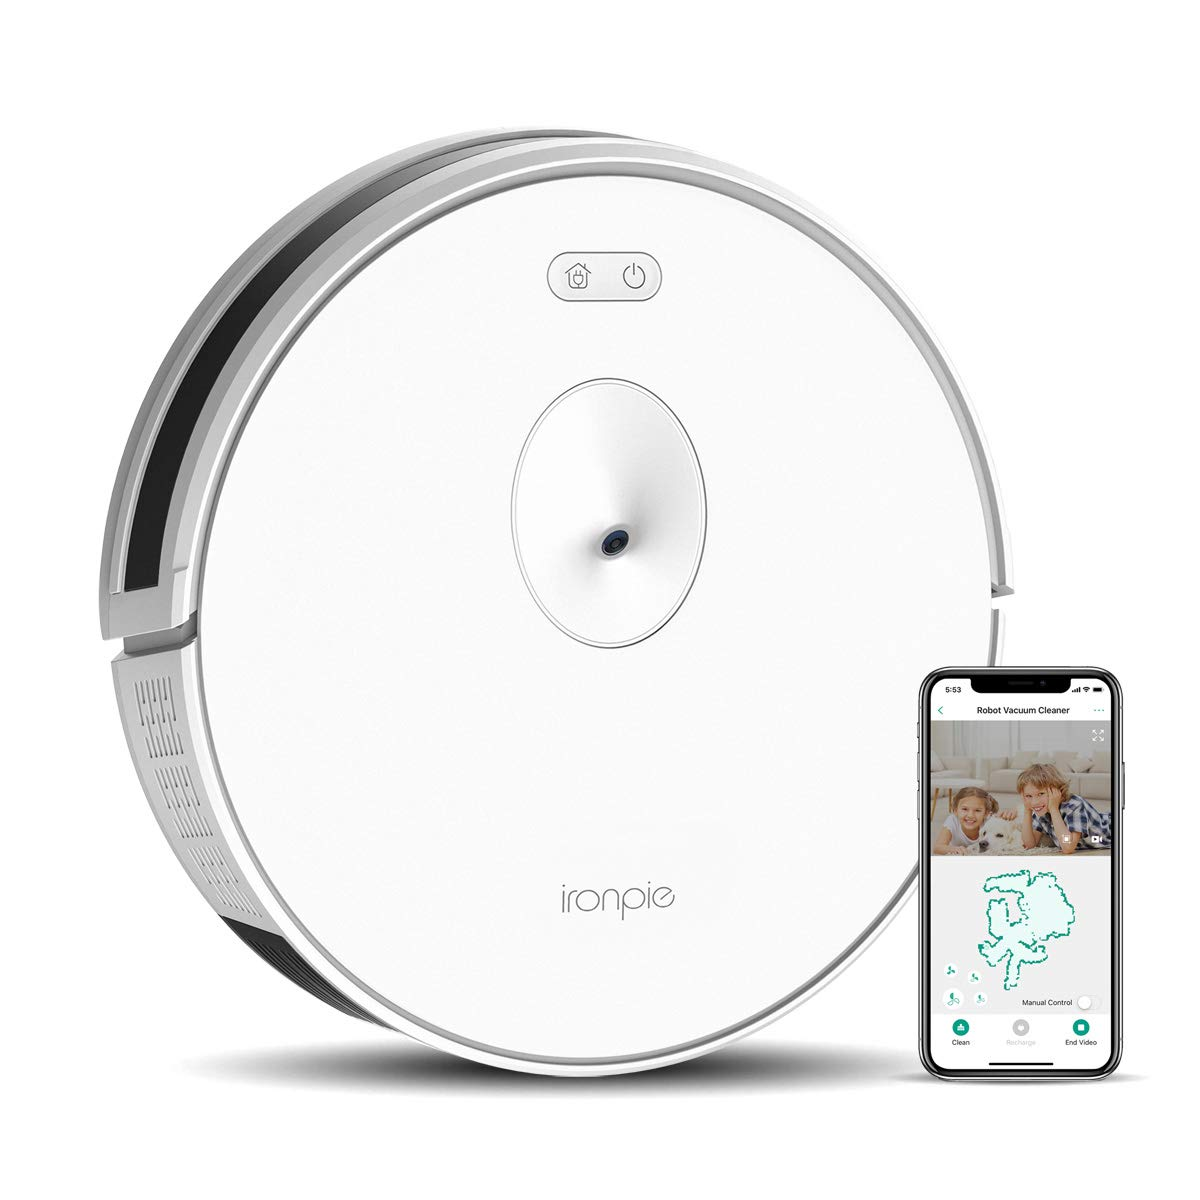 Trifo Ironpie m6 Robot Vacuum Cleaner with Wi-Fi Connectivity, Remote Monitoring, 1800Pa Strong Suction, Visual Navigation, Self-Charging, Schedule Cleaning ...